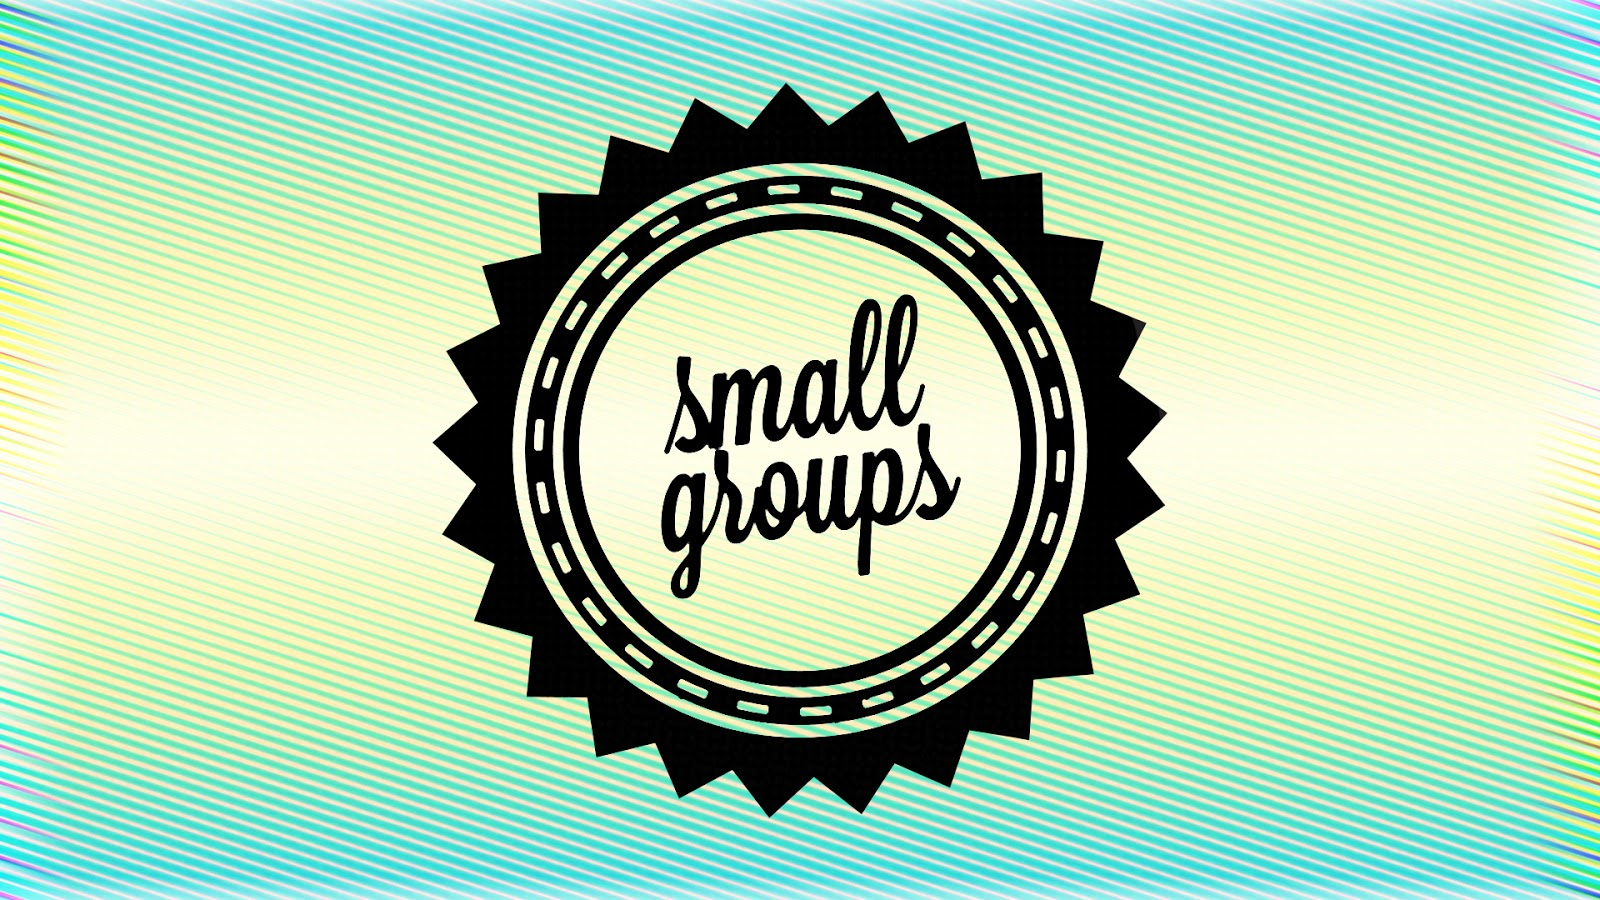 Small Groups